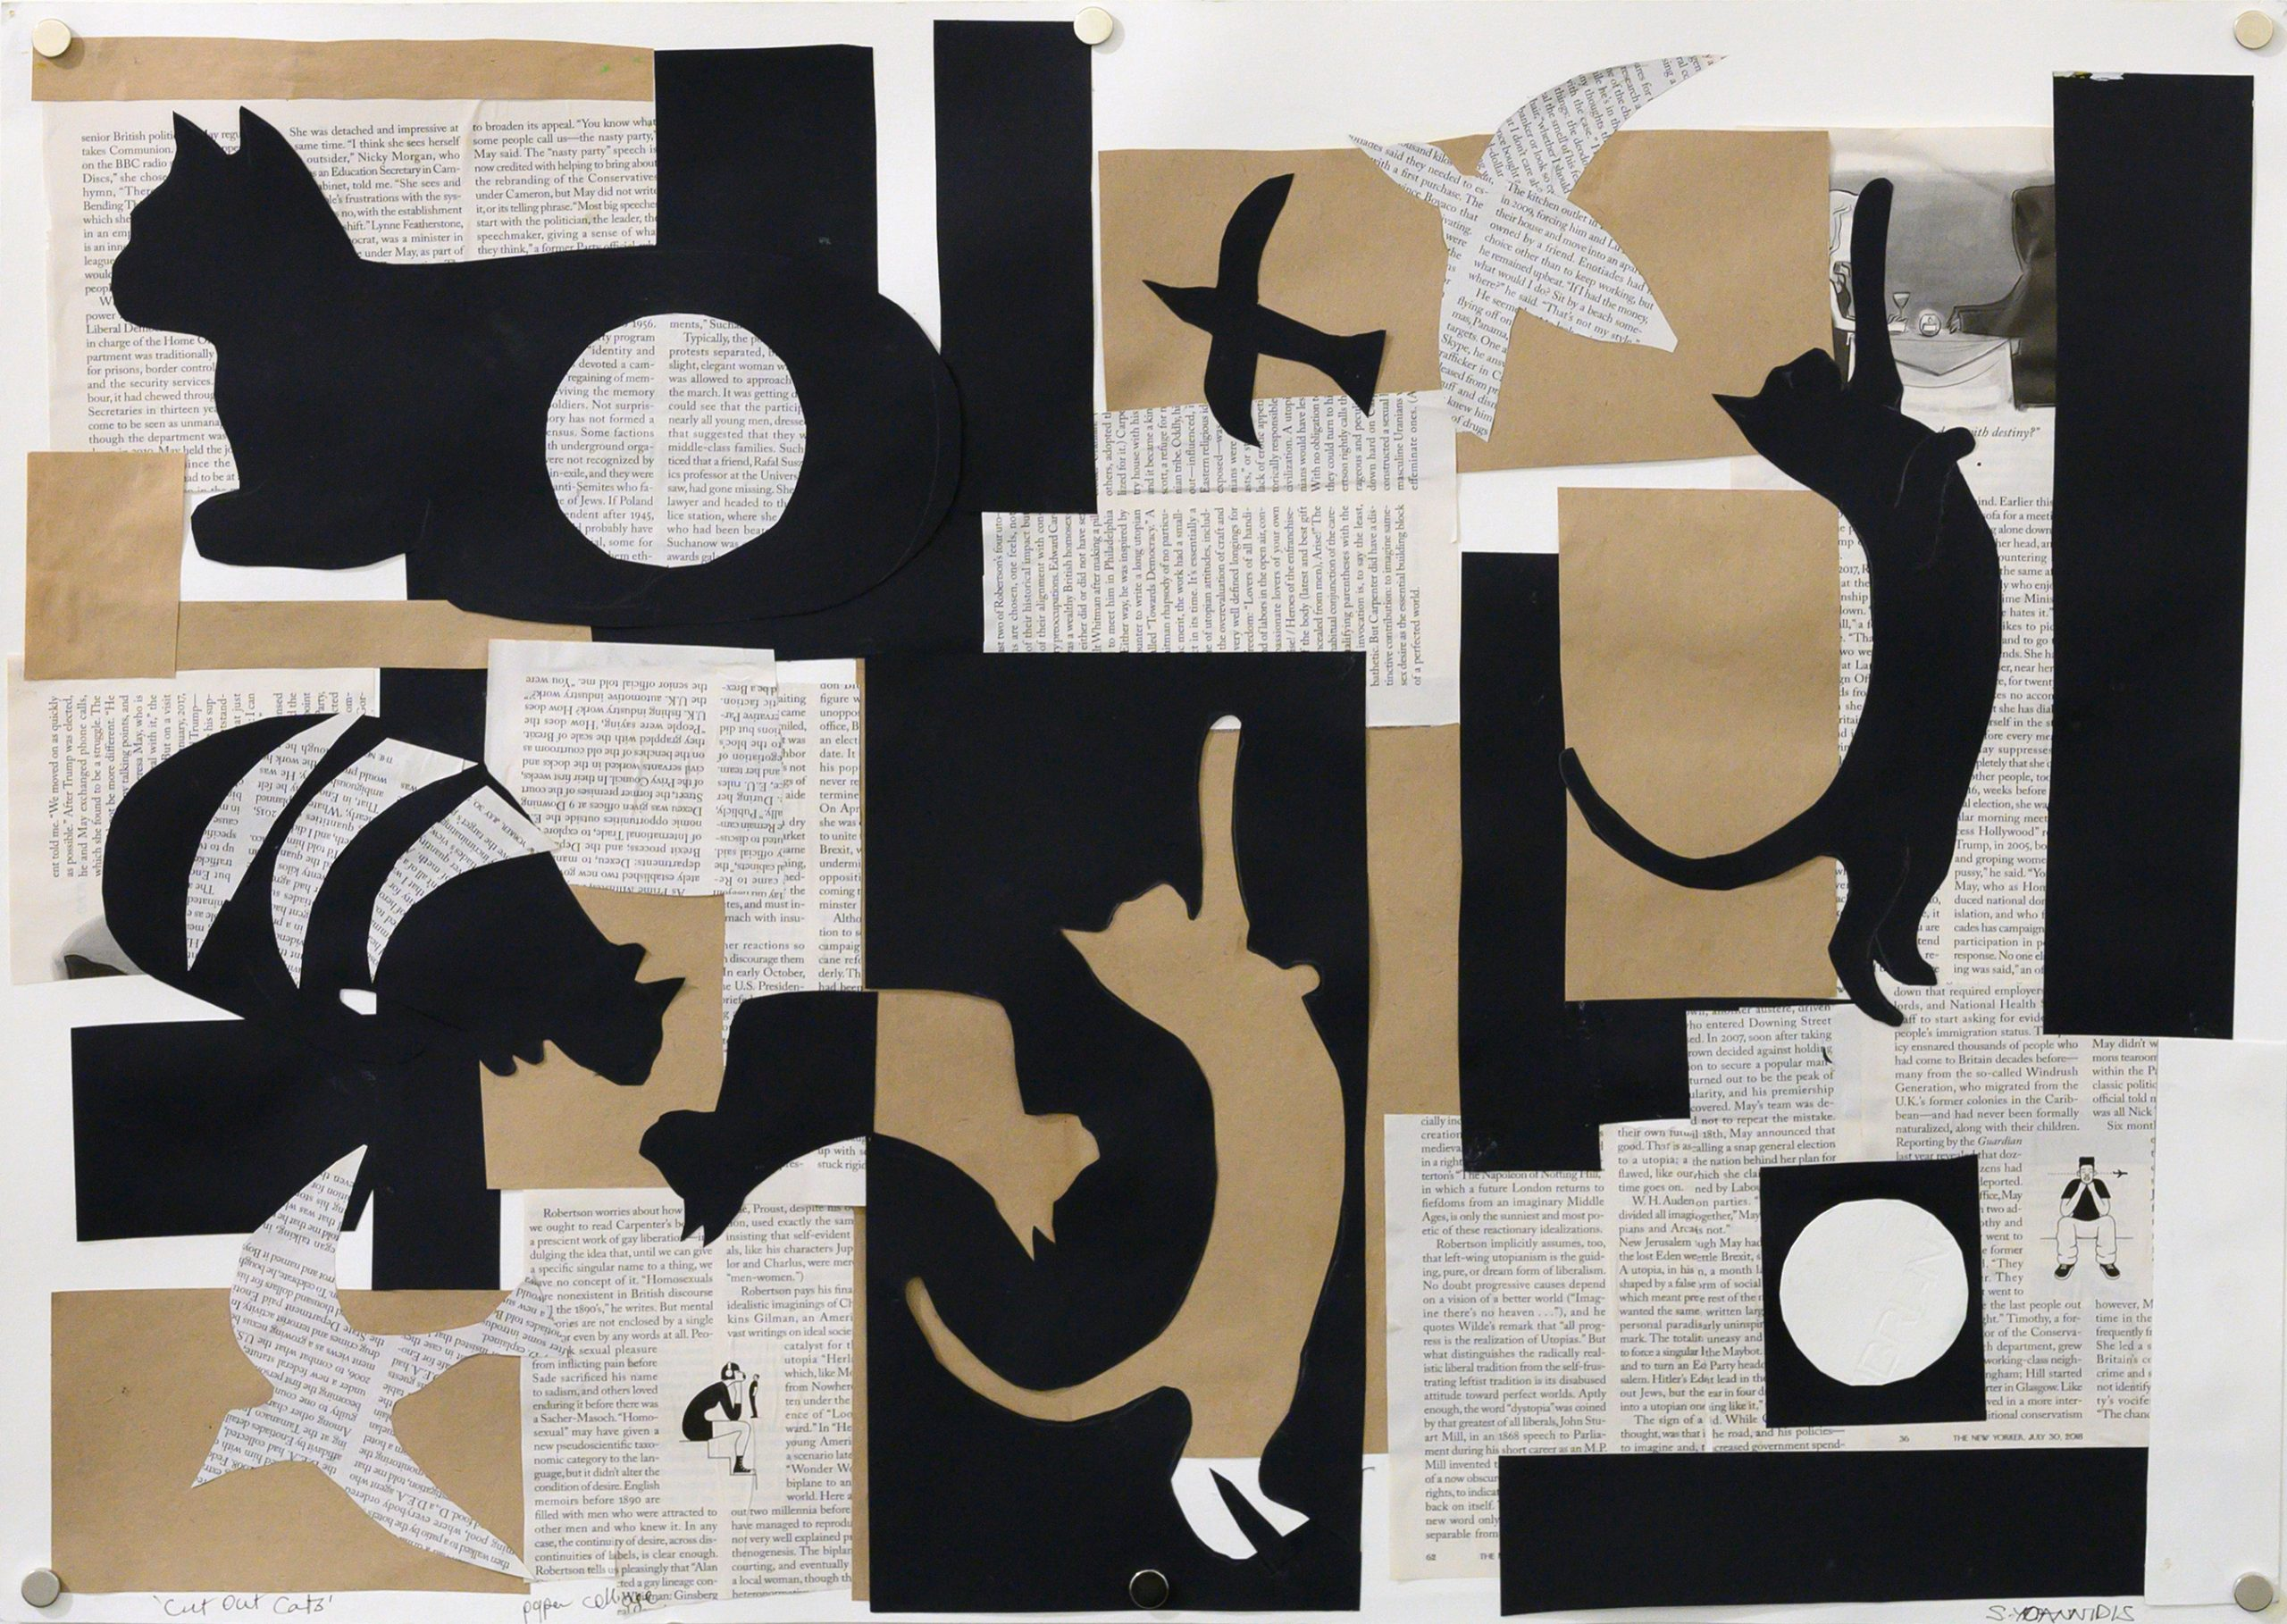 Unframed artwork by Stephanie Yoannidis of a black, white and brown kraft coloured collage featuring multiple cats amongst newsprint and silhouettes of birds